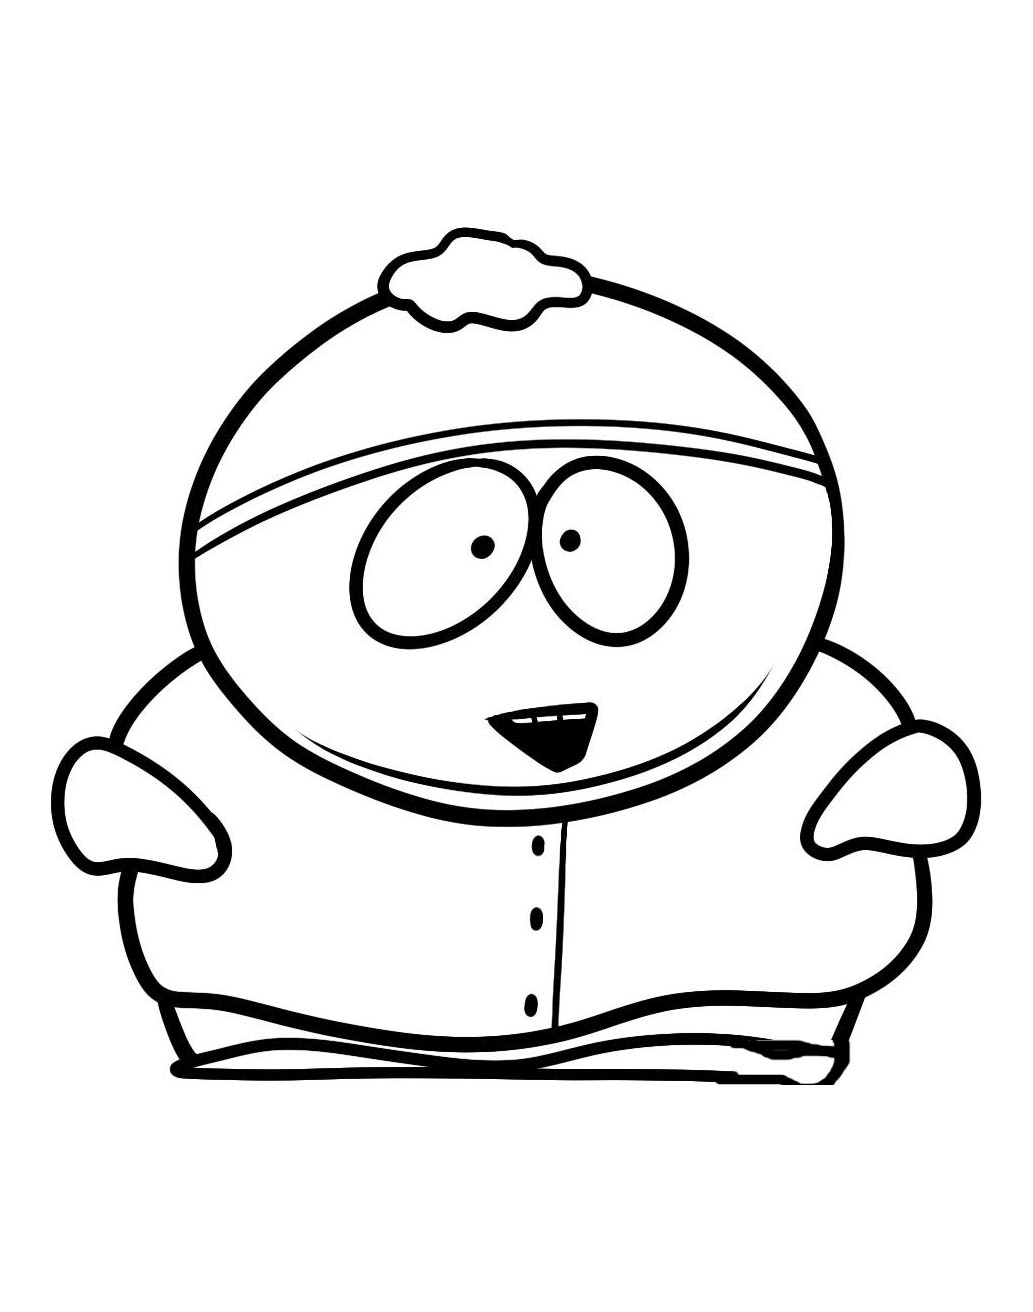 South Park For Children - South Park Kids Coloring Pages - Free Printable South Park Coloring Pages